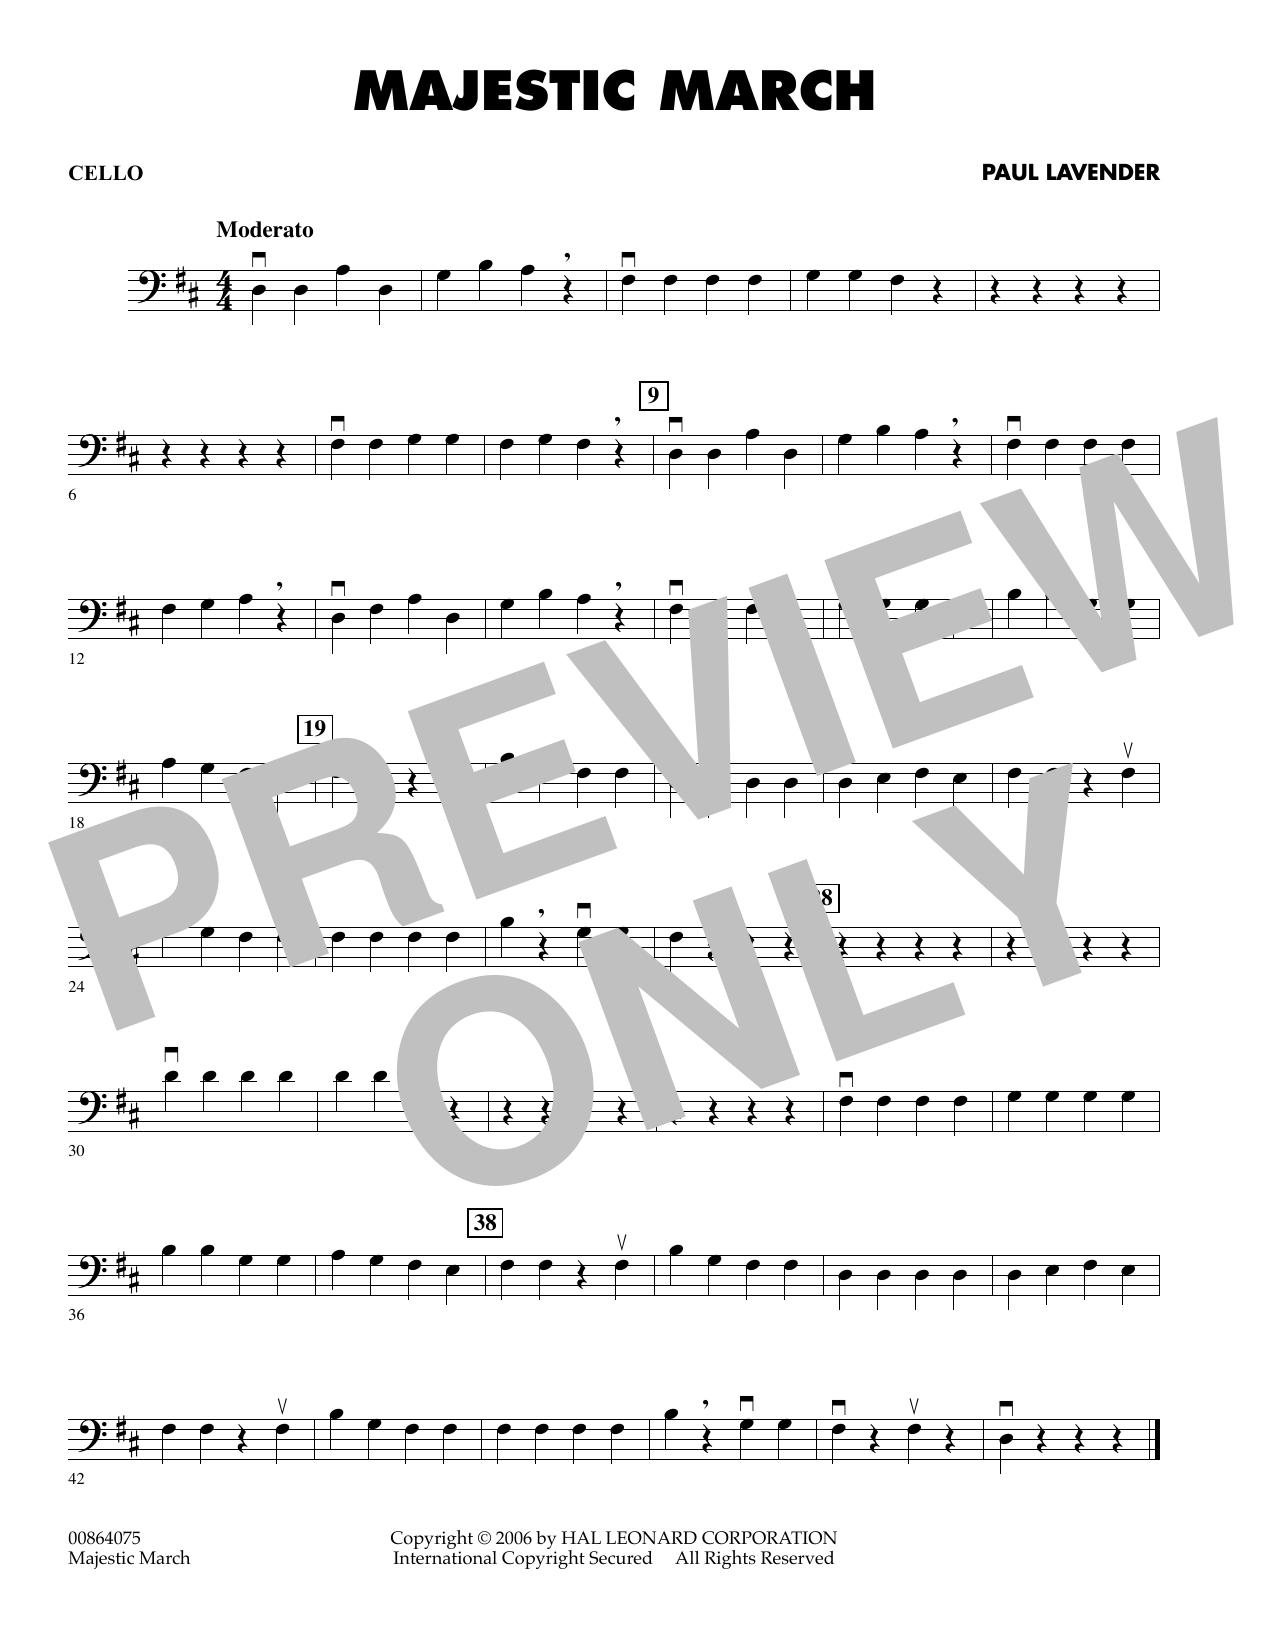 Paul Lavender Majestic March - Cello sheet music preview music notes and score for Orchestra including 1 page(s)